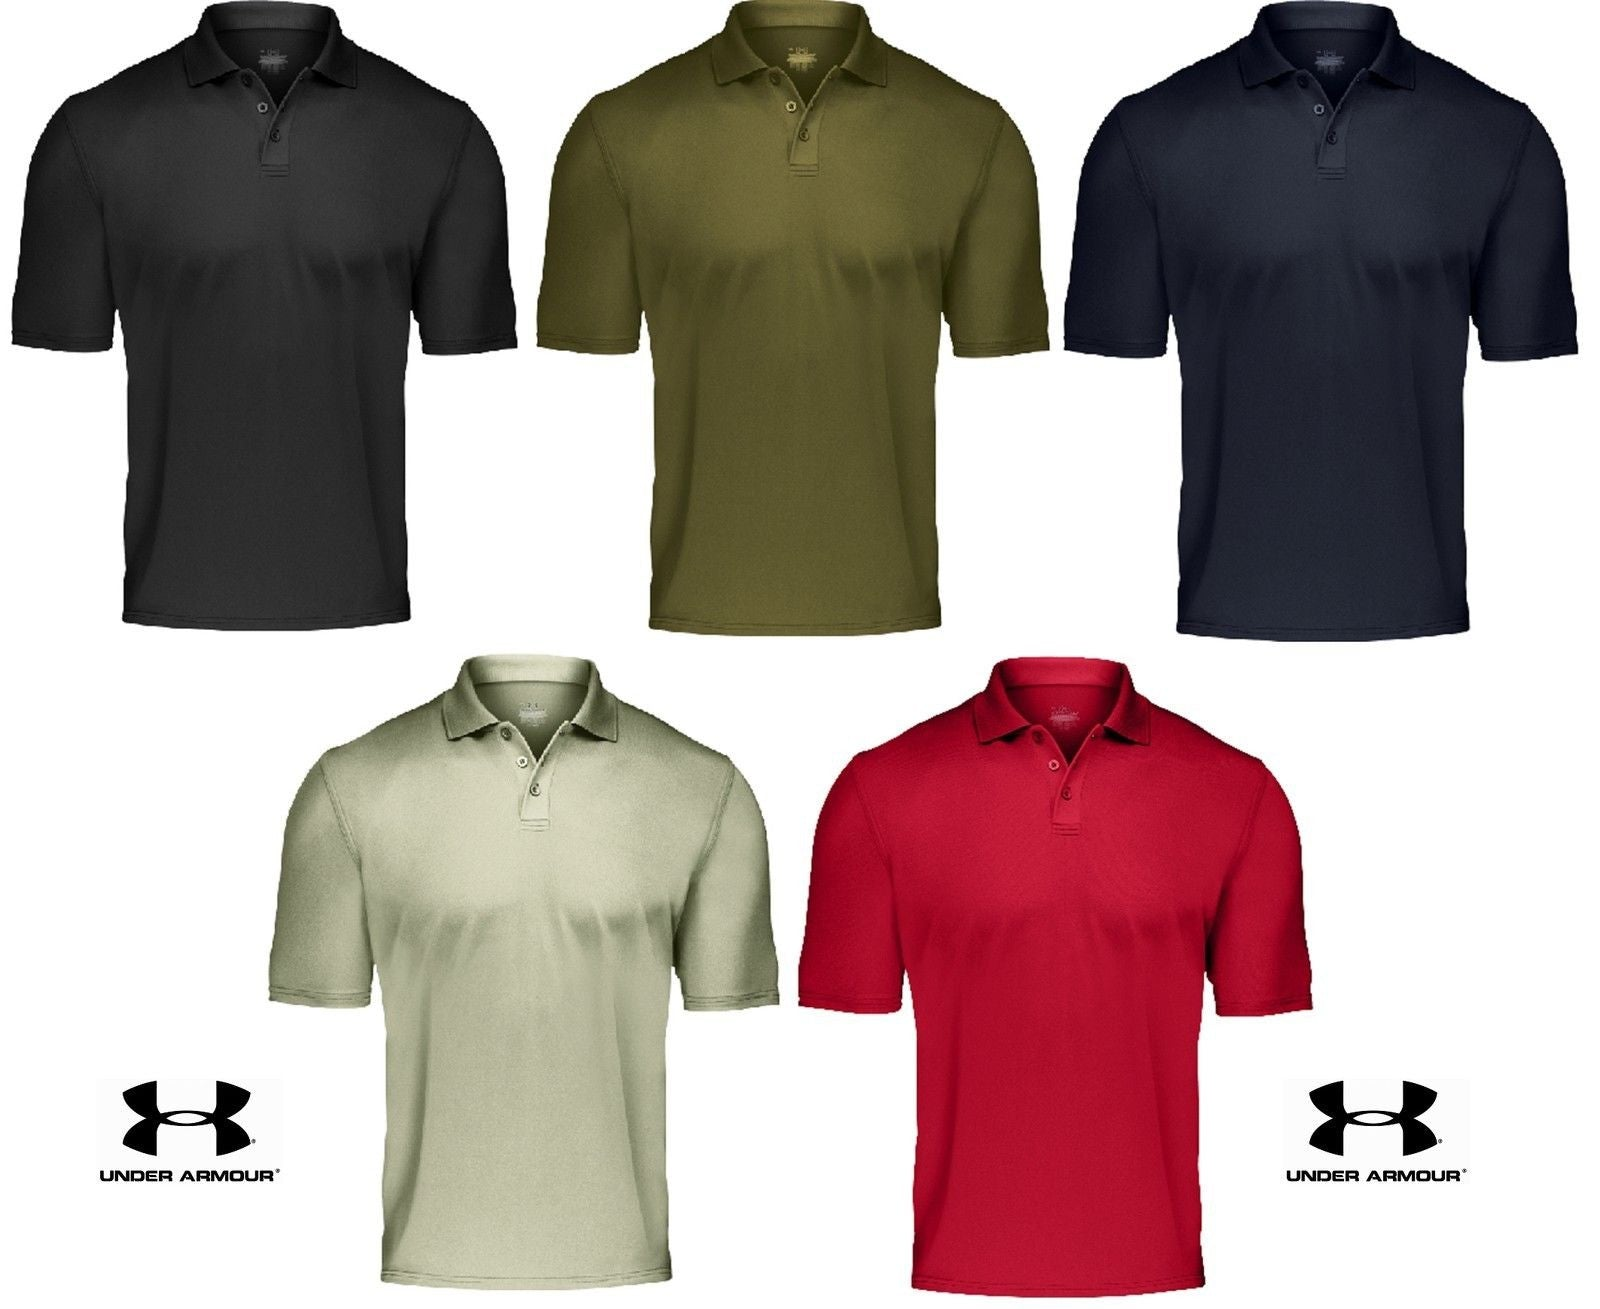 Under Armour Tactical Range Polo Shirt Mens Loose Fit